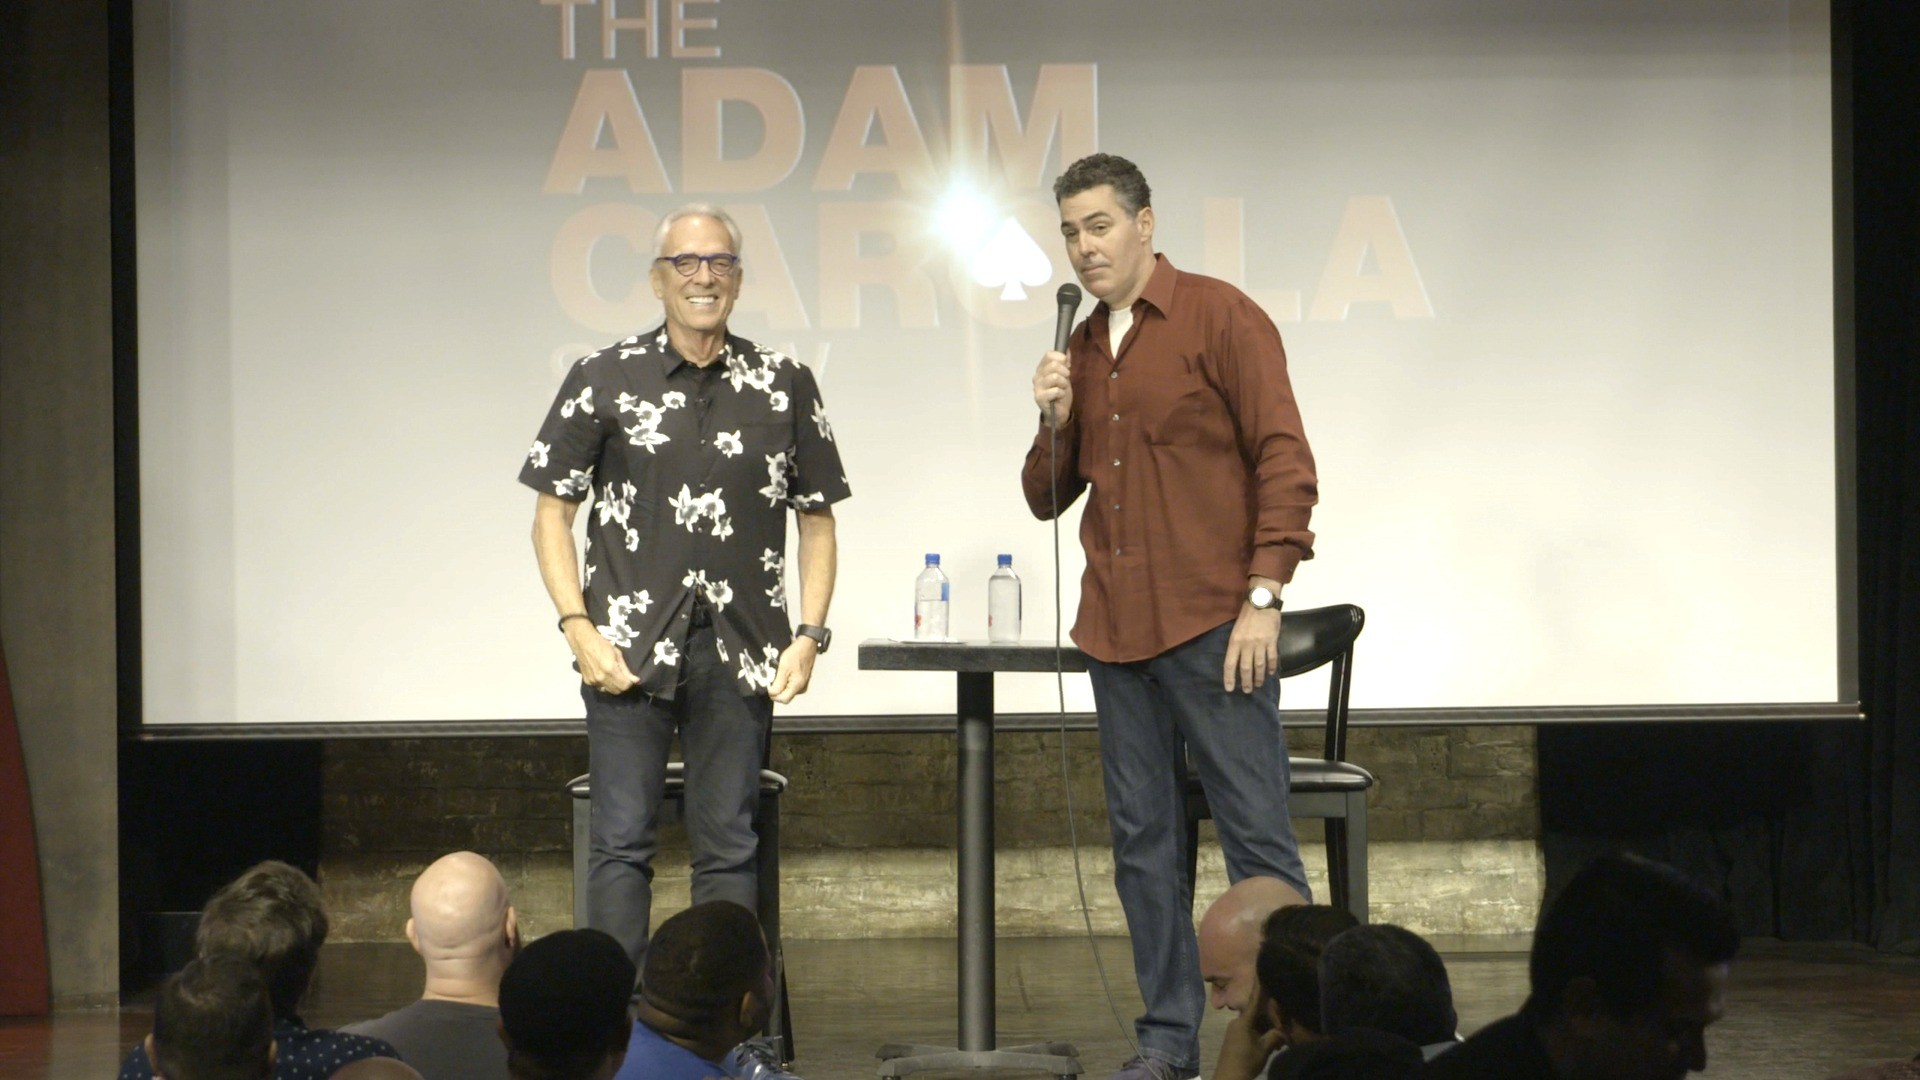 Adam Carolla?s Wisecracking Wisdom on the Future of Podcasting | OC Weekly